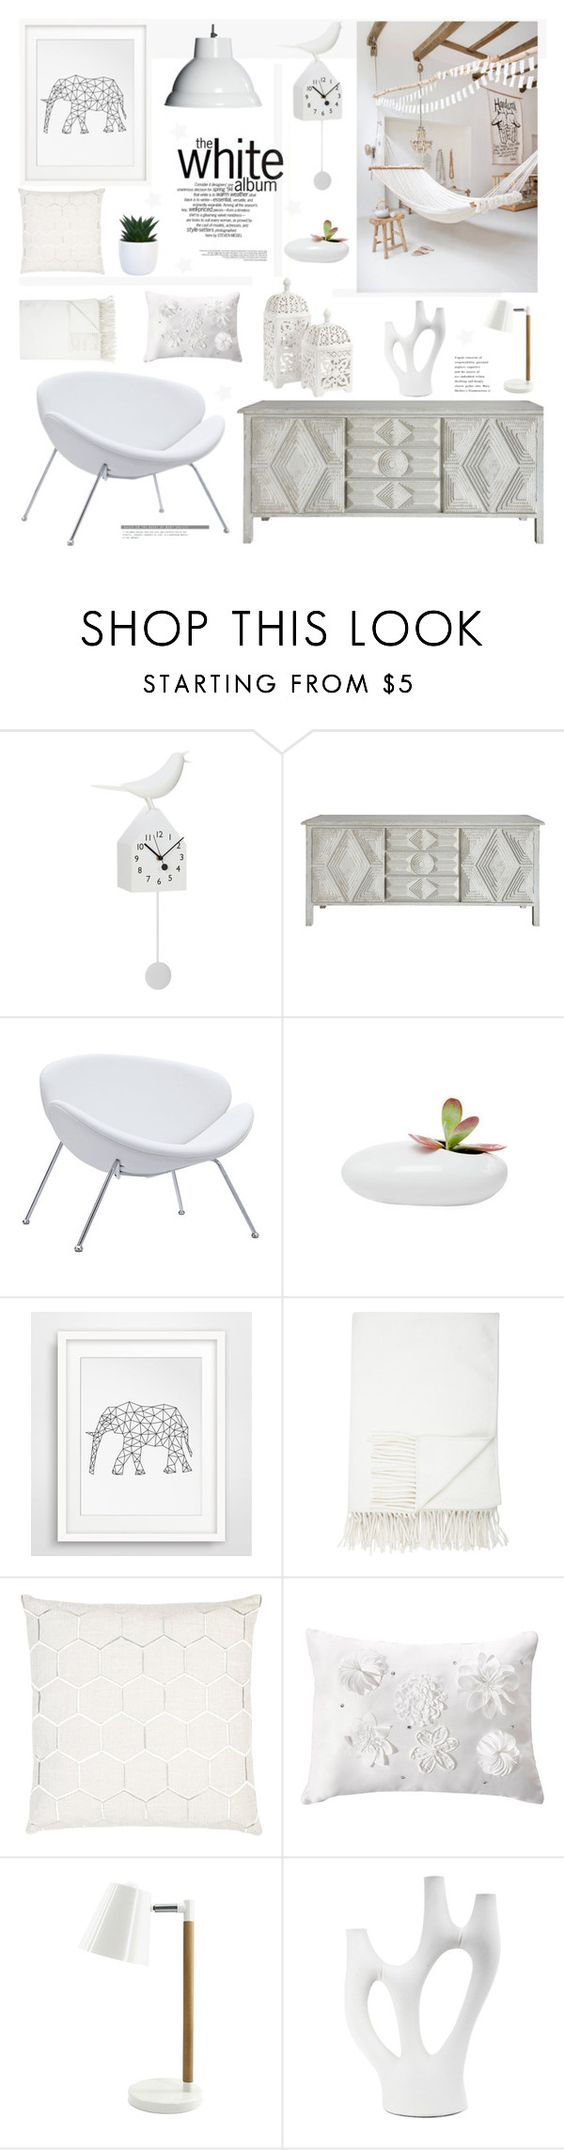 """""""Sin título #2259"""" by liliblue ❤ liked on Polyvore featuring interior, interiors, interior design, home, home decor, interior decorating, Lene Bjerre, Dot & Bo, Barneys New York and Priscilla & Parker"""